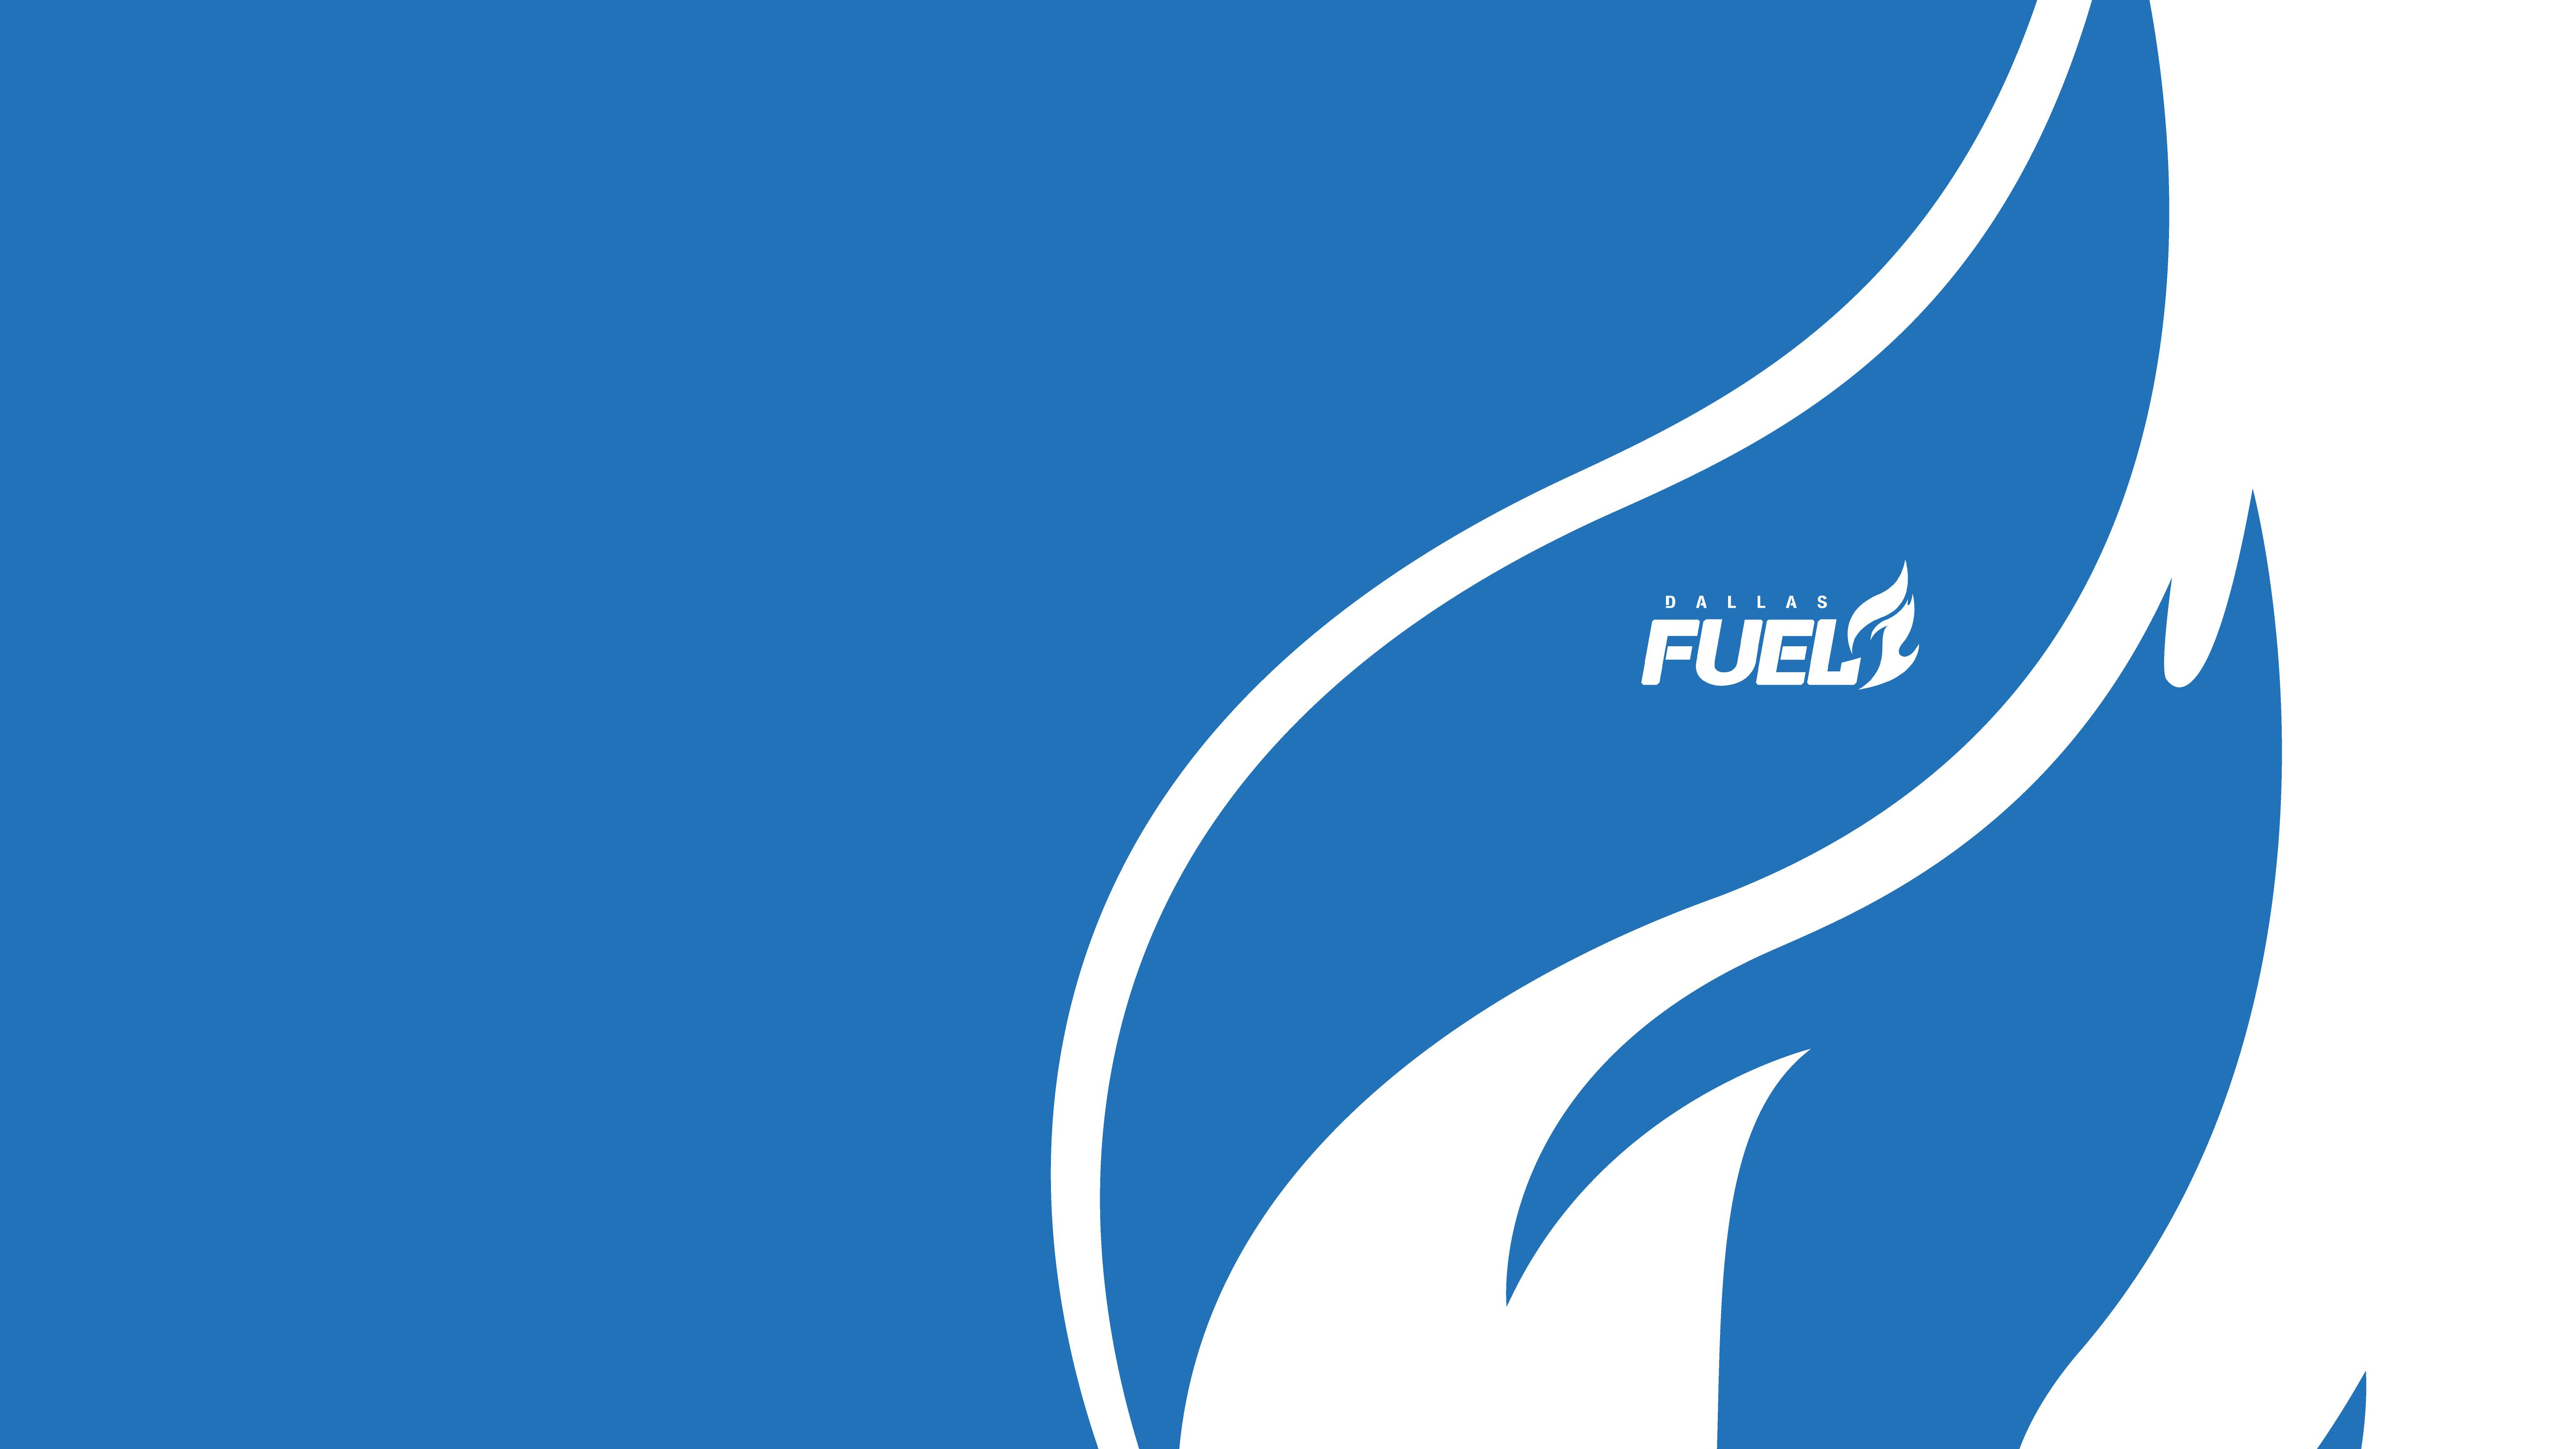 For all Dallas Fuel fan! I designed some DF wallpaper to go.